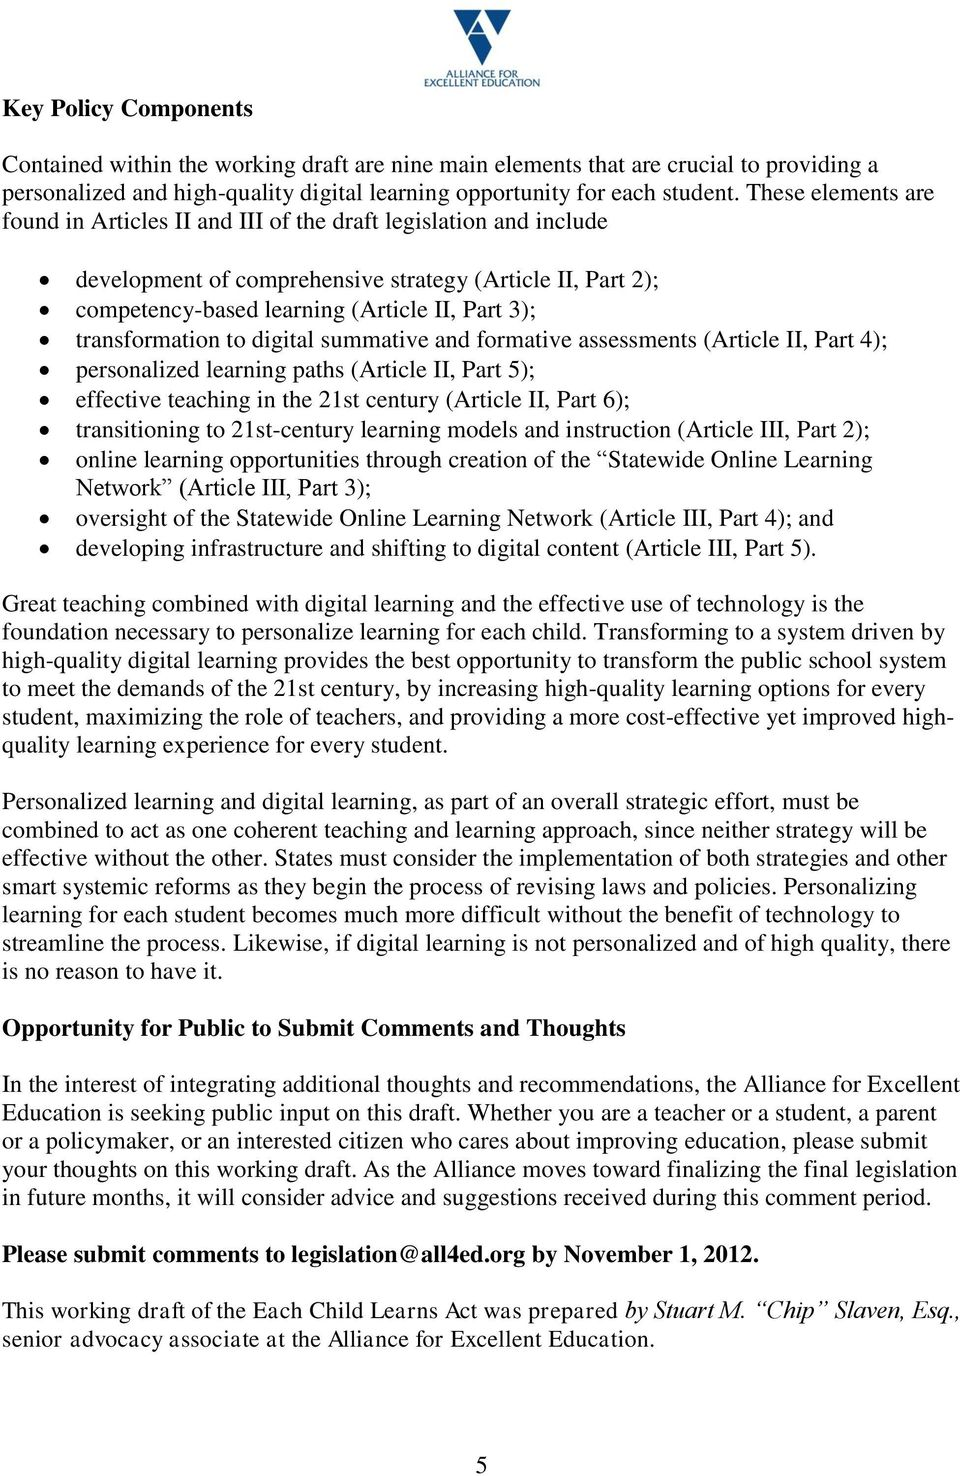 transformation to digital summative and formative assessments (Article II, Part 4); personalized learning paths (Article II, Part 5); effective teaching in the 21st century (Article II, Part 6);